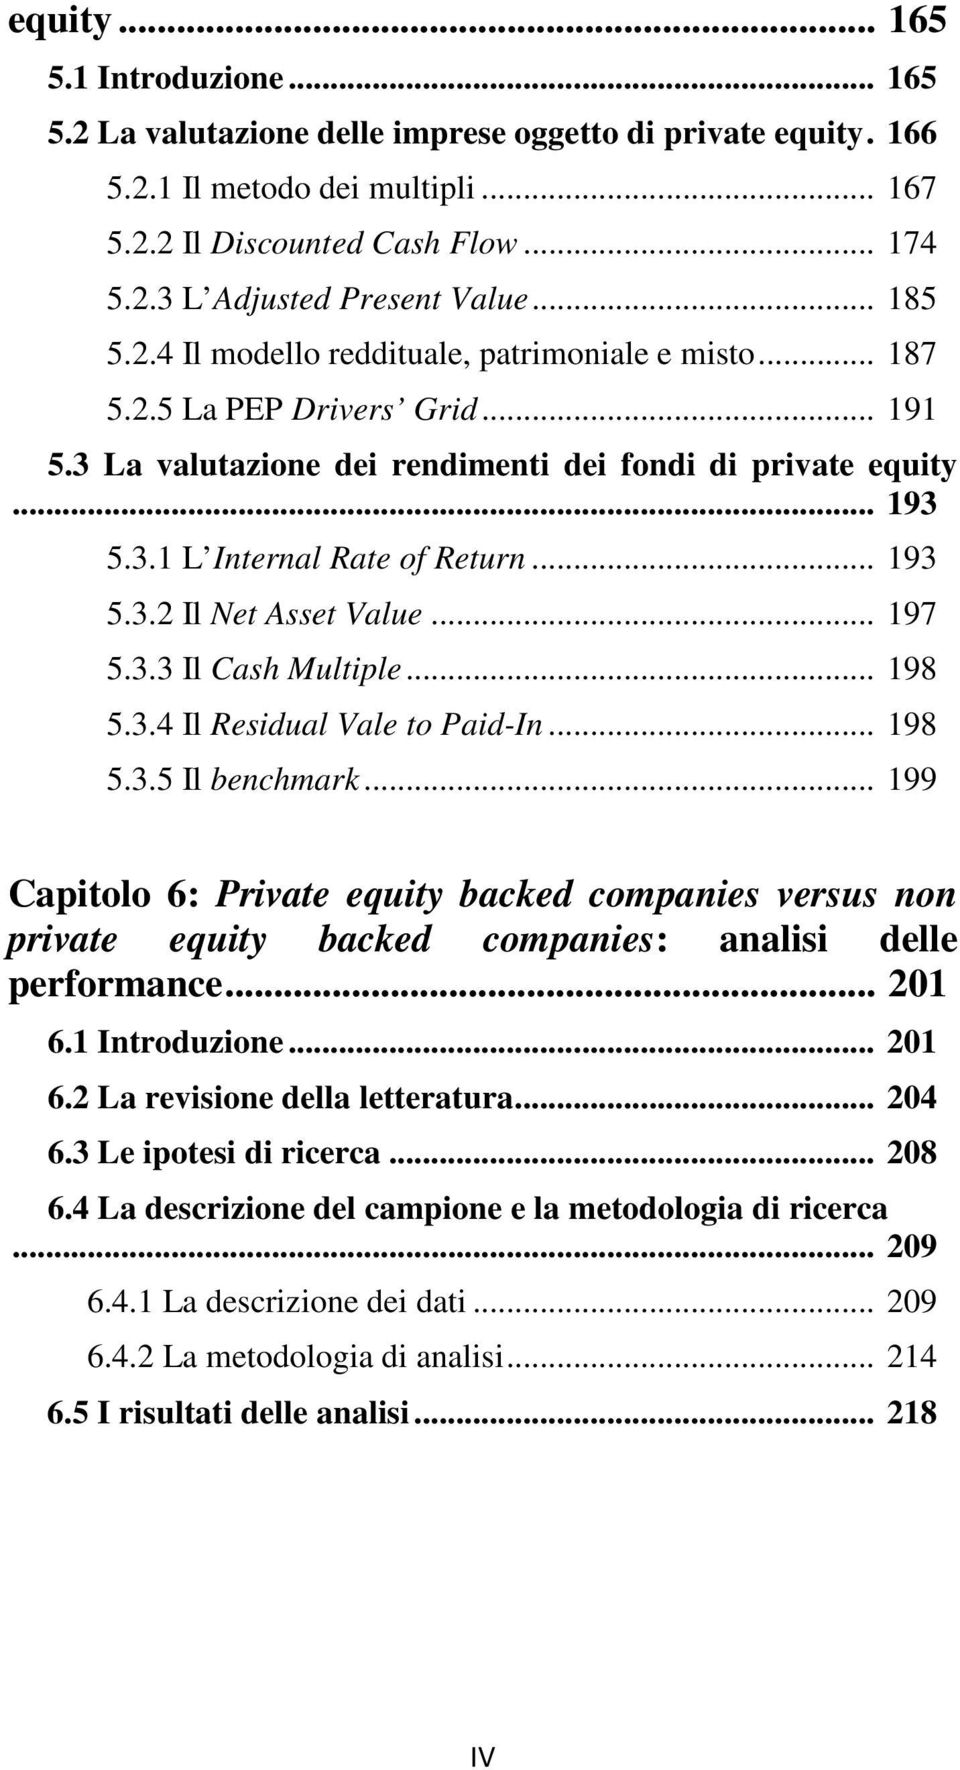 .. 193 5.3.2 Il Net Asset Value... 197 5.3.3 Il Cash Multiple... 198 5.3.4 Il Residual Vale to Paid-In... 198 5.3.5 Il benchmark.